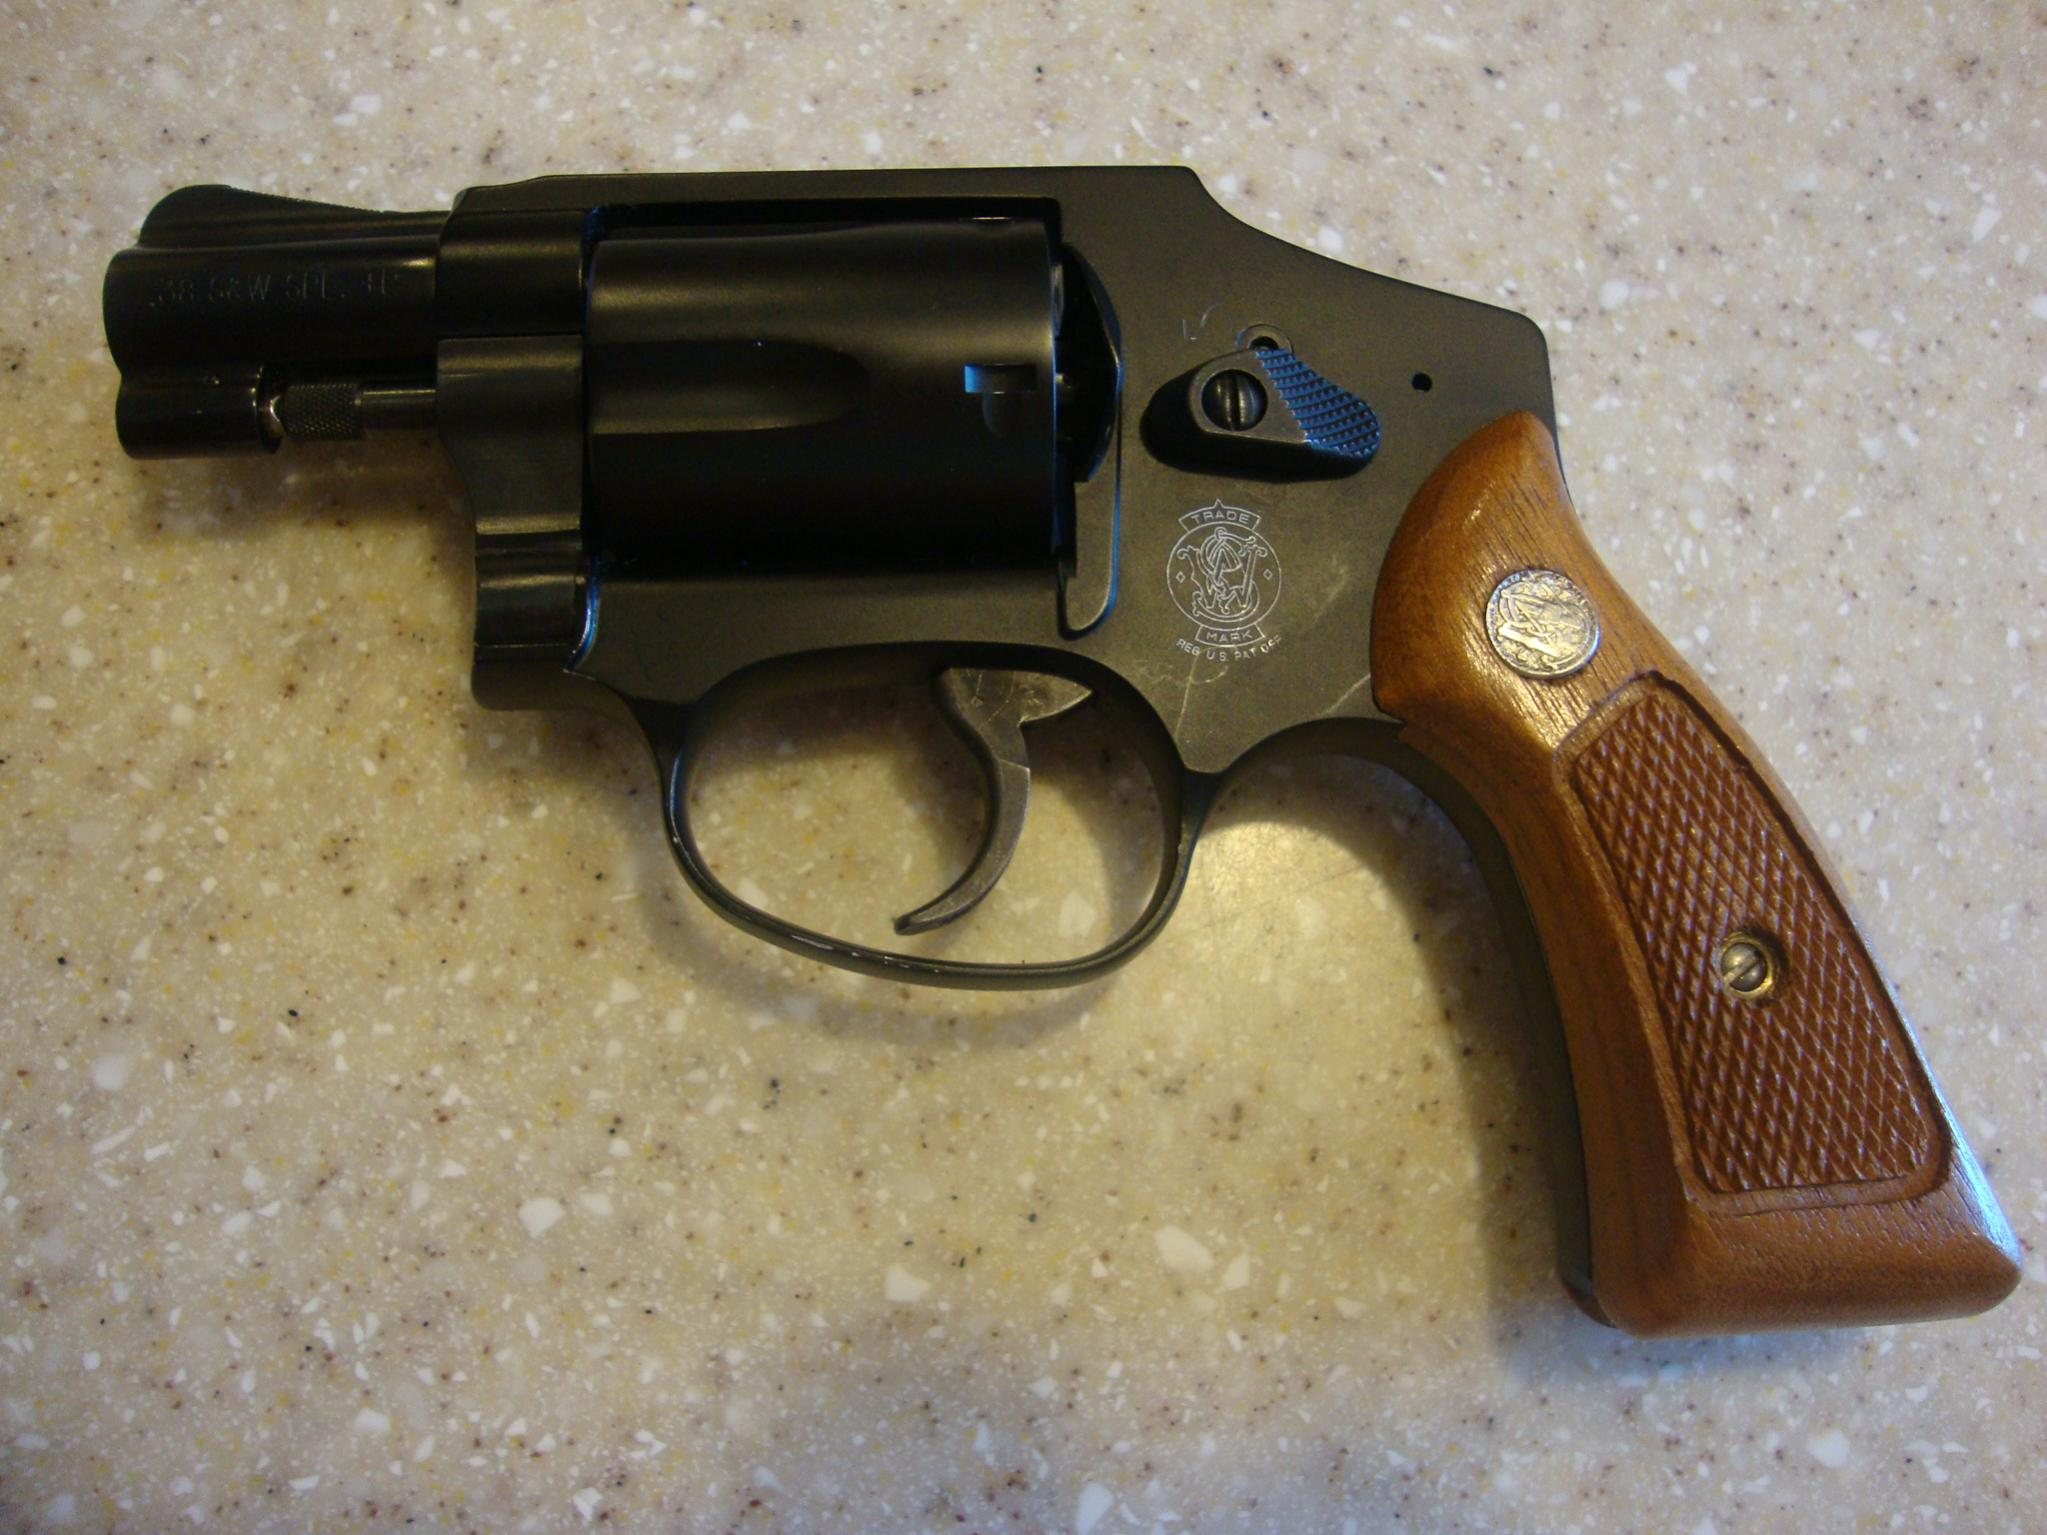 Ordered an S&W 638 today-dsc01452.jpg